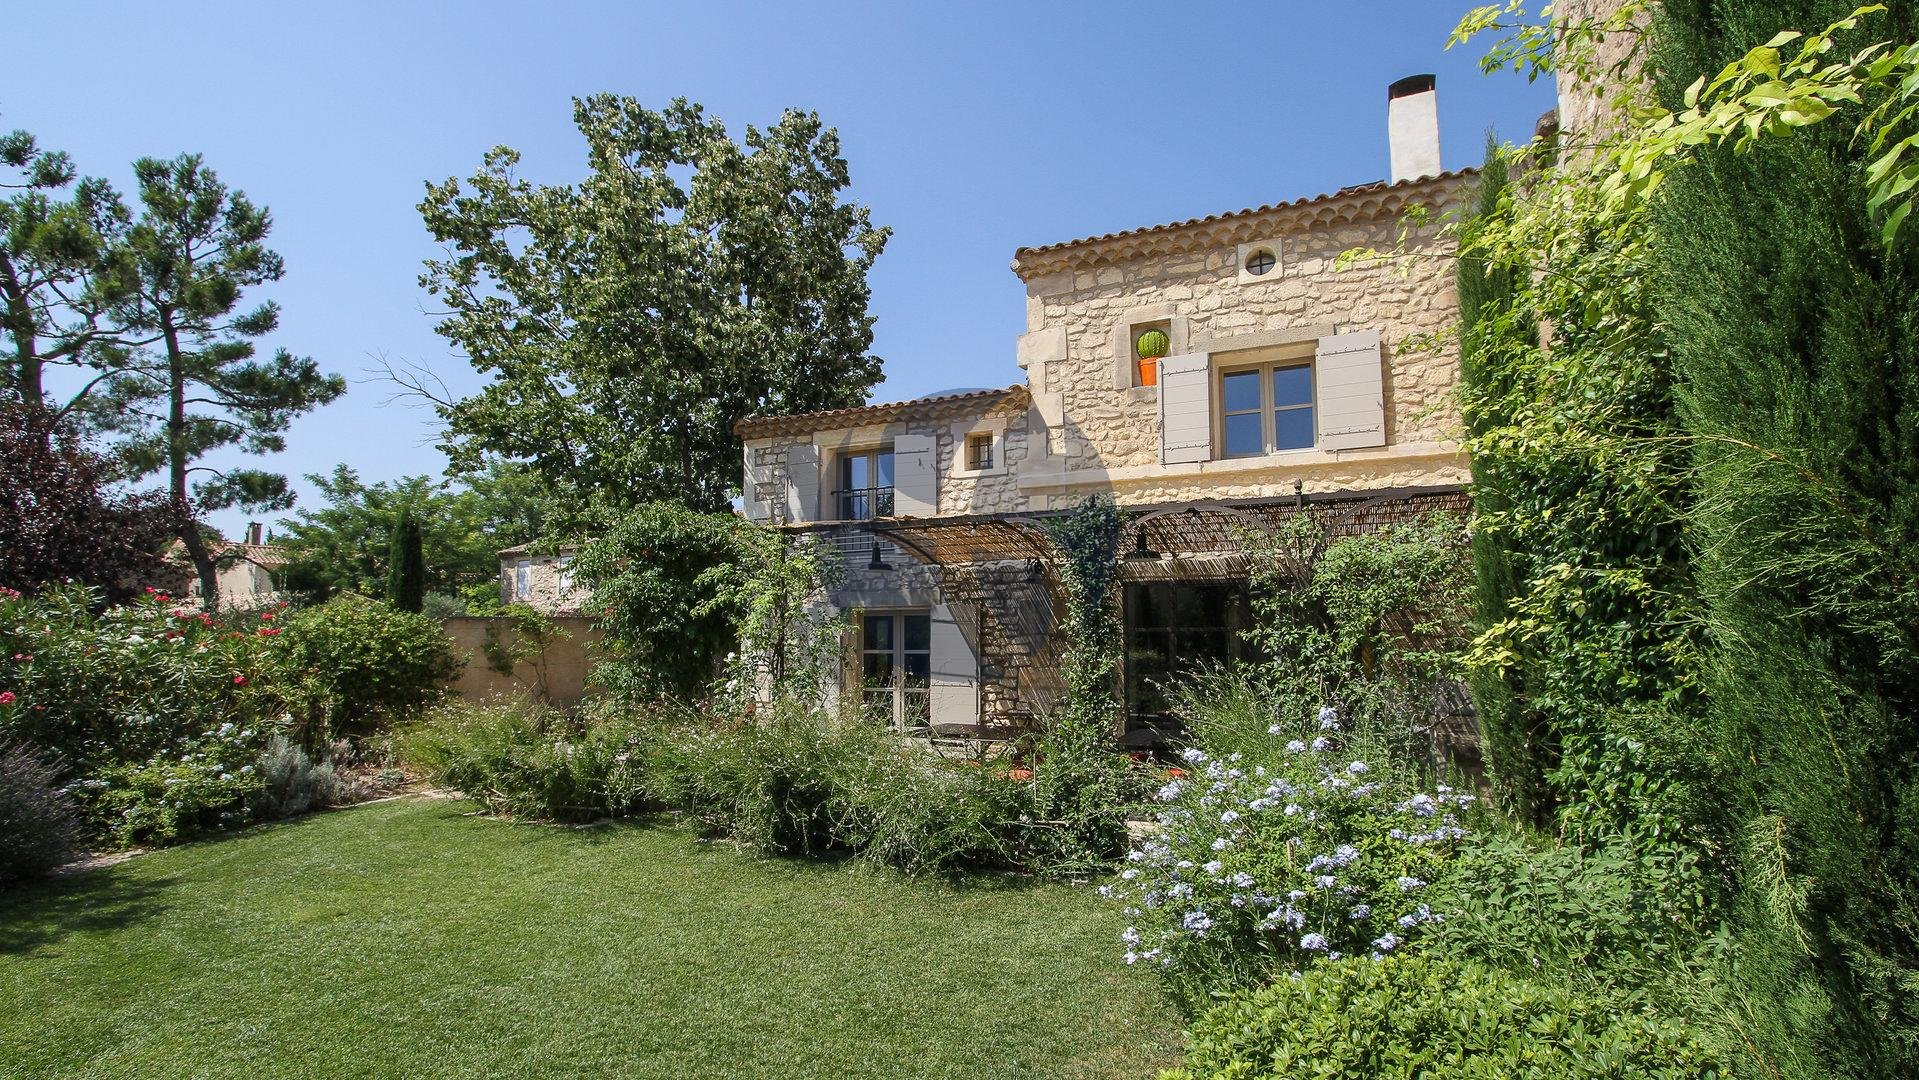 Townhouse in Maussane les Alpilles